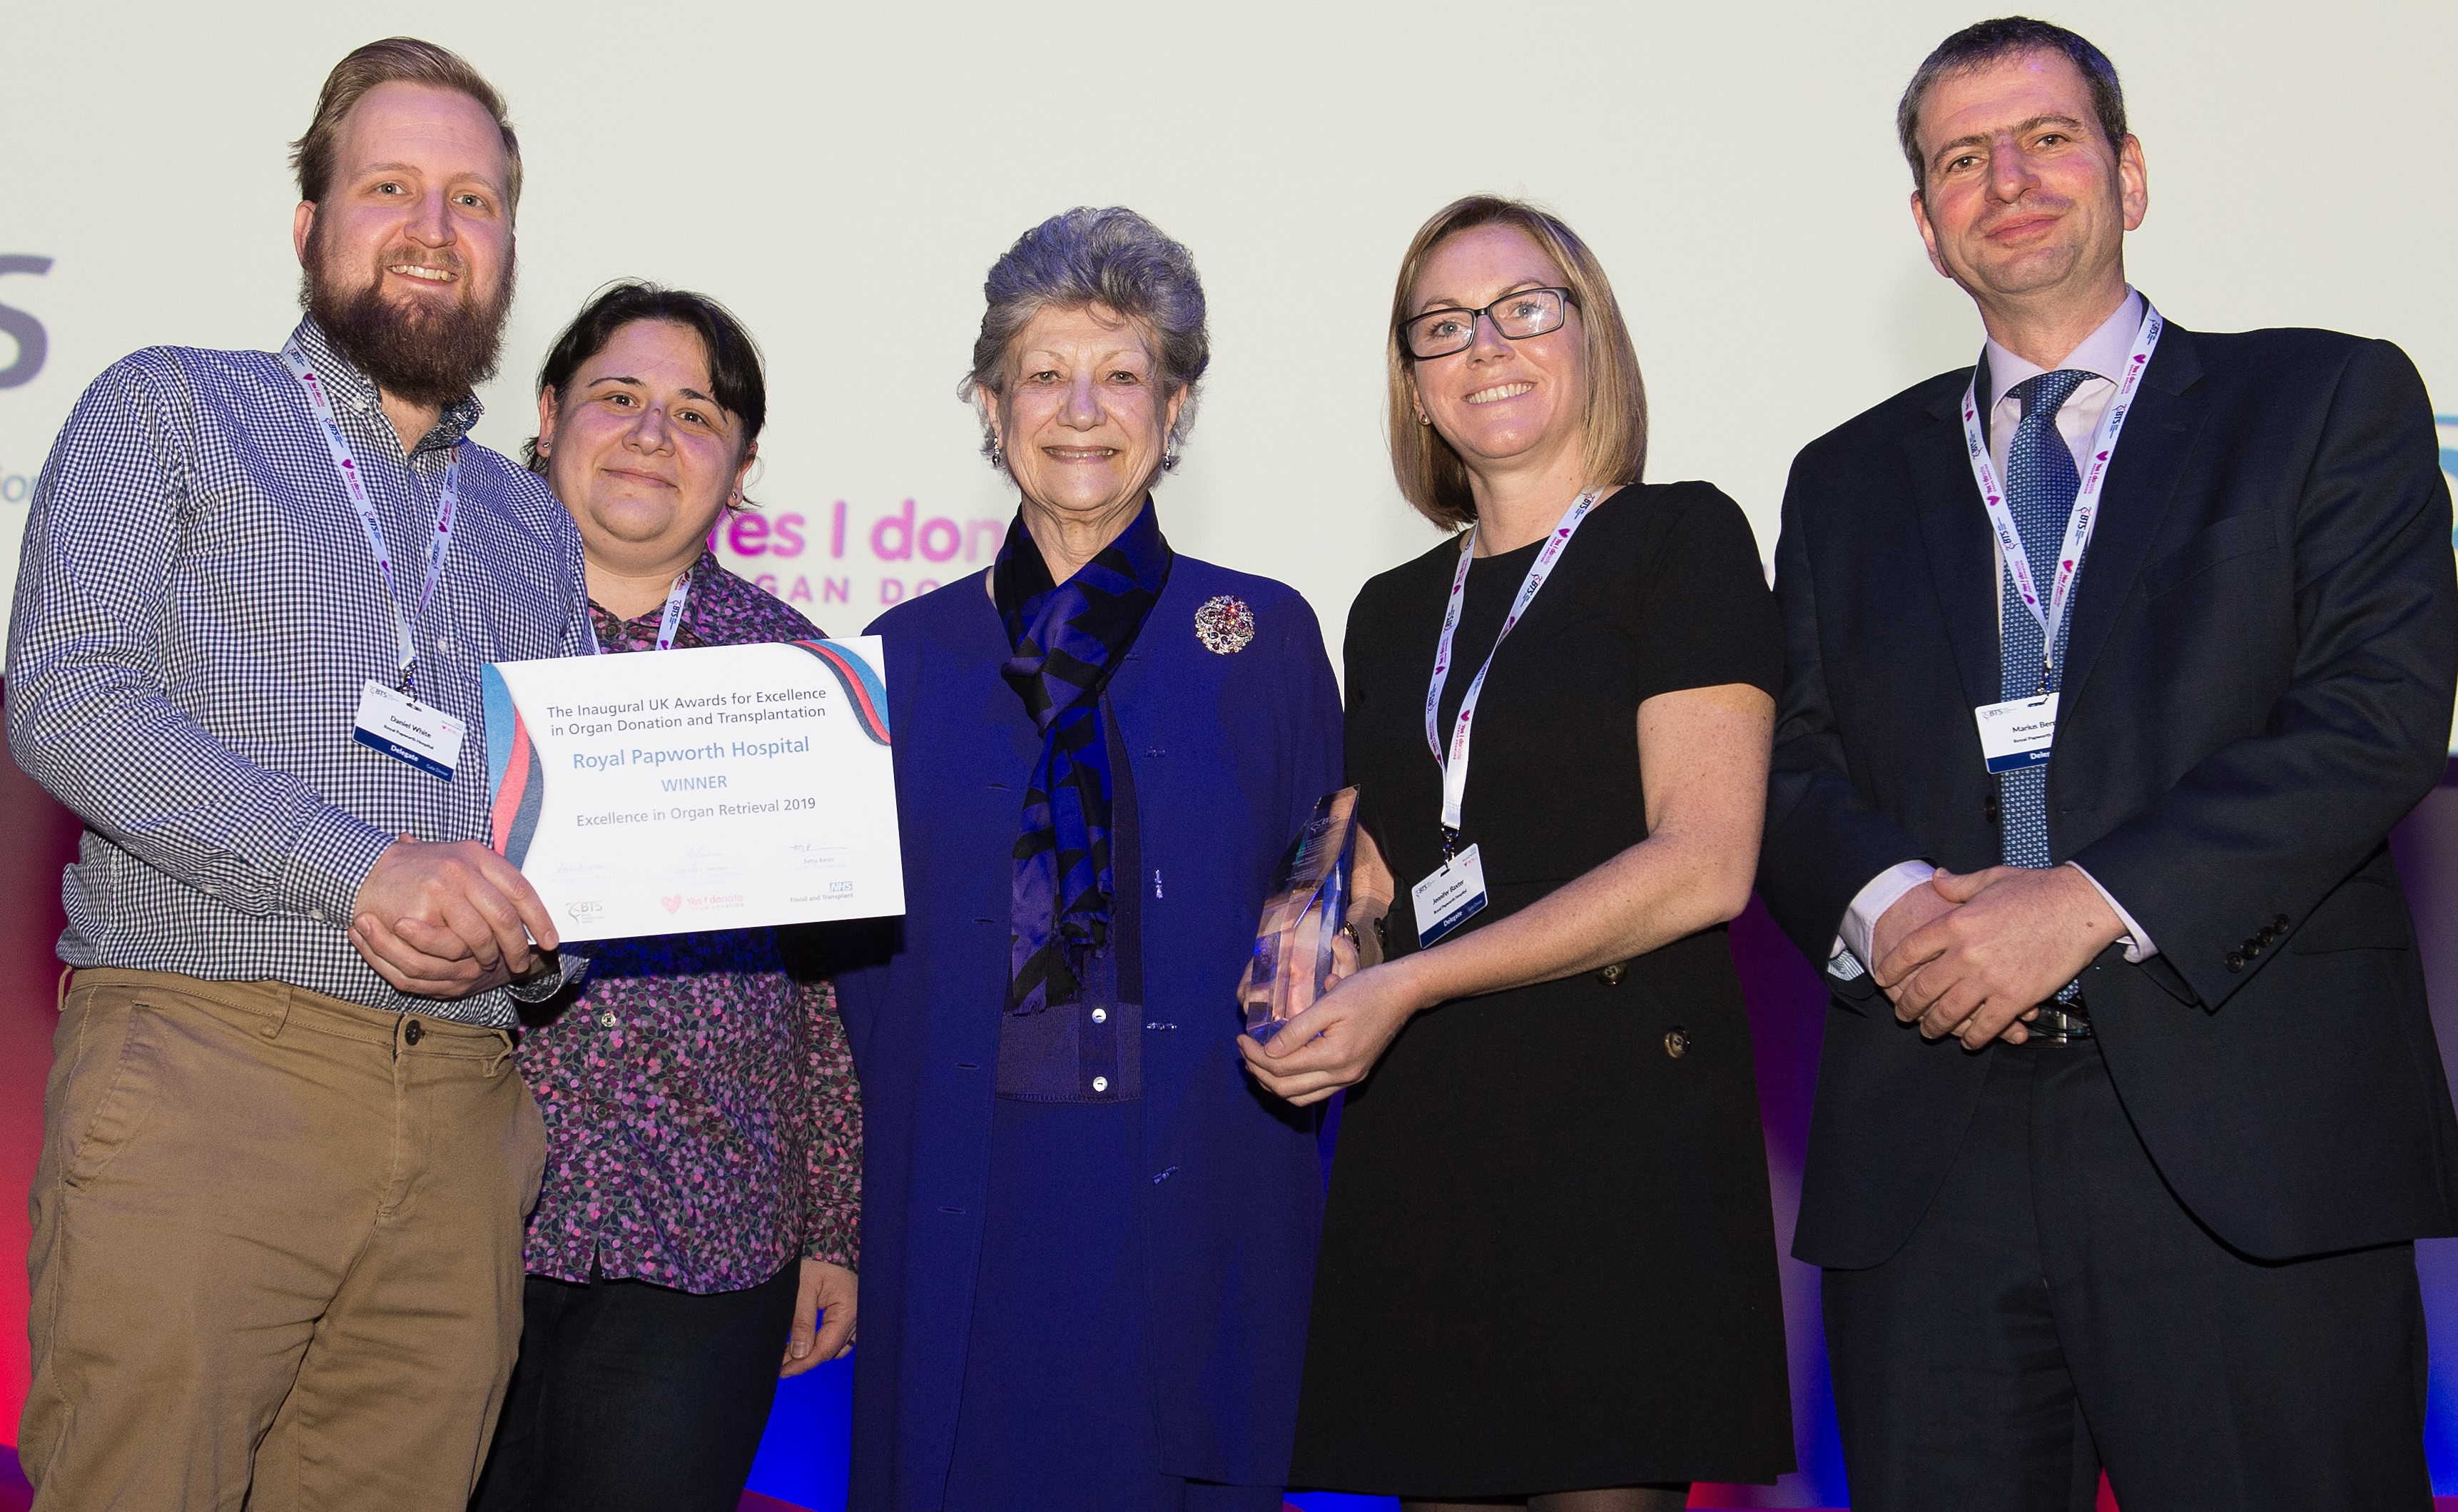 Staff from The Royal Papworth Hospital receiving the award for Excellence in Organ Retrieval